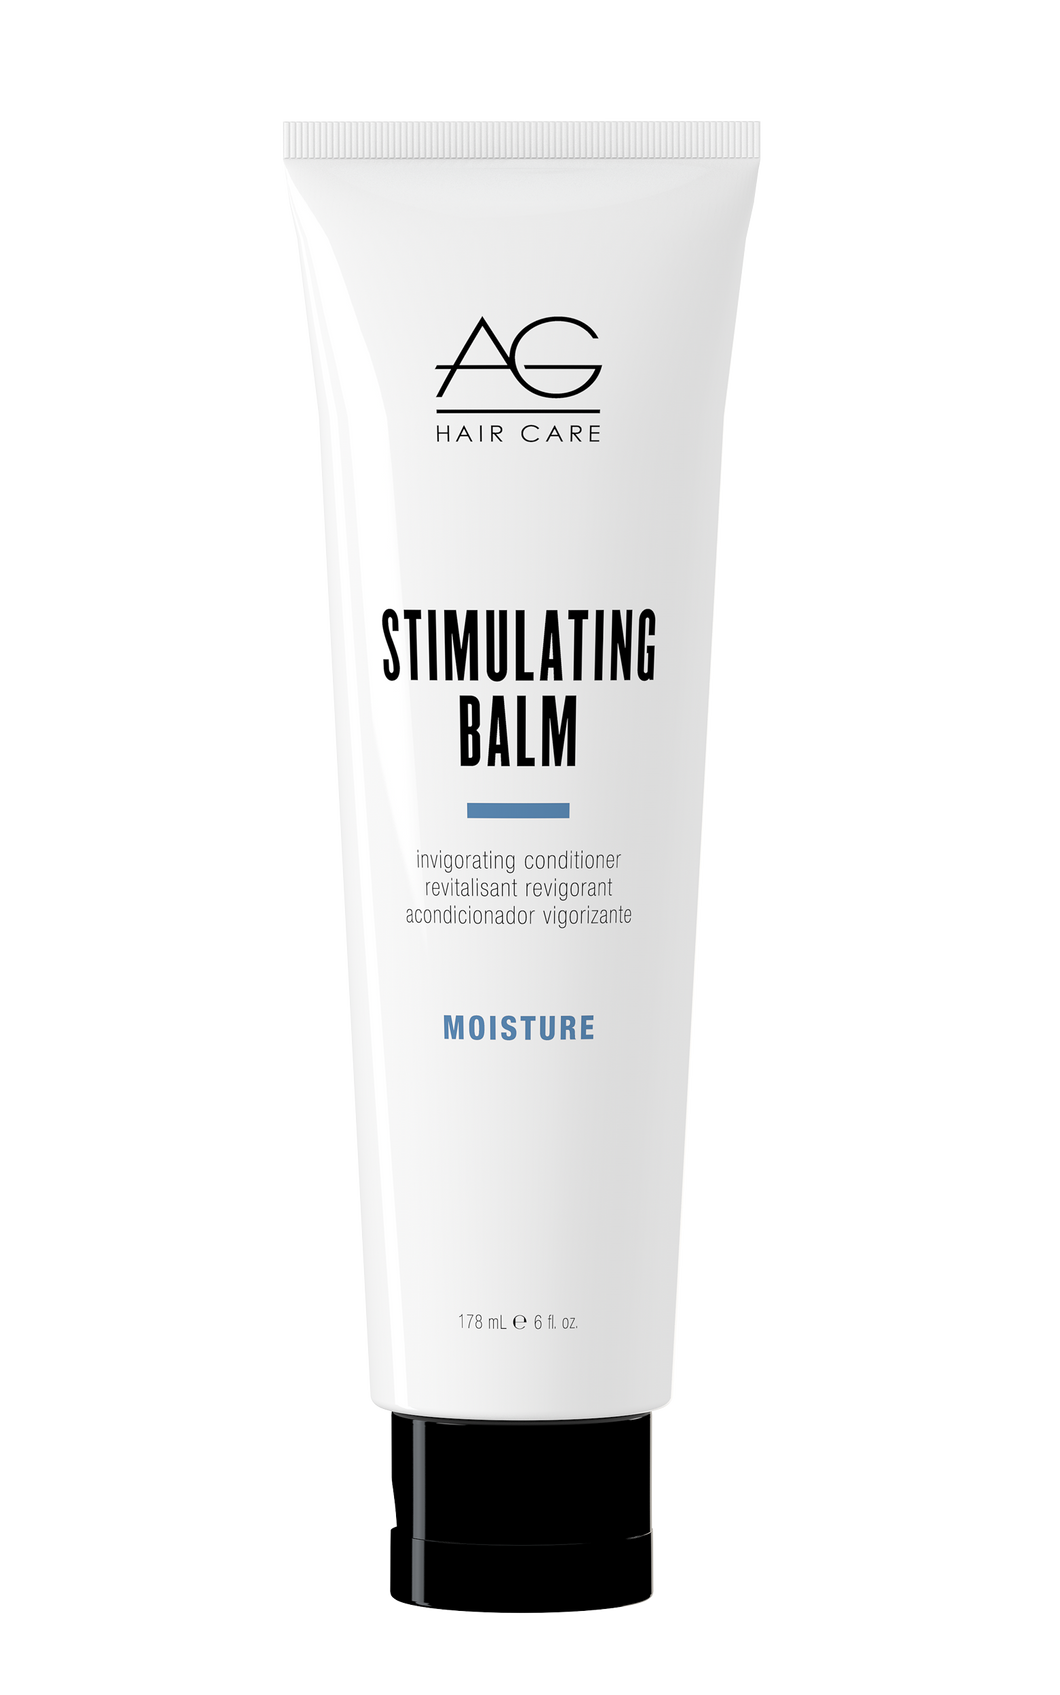 AG Stimulating Balm conditioner (178ml)